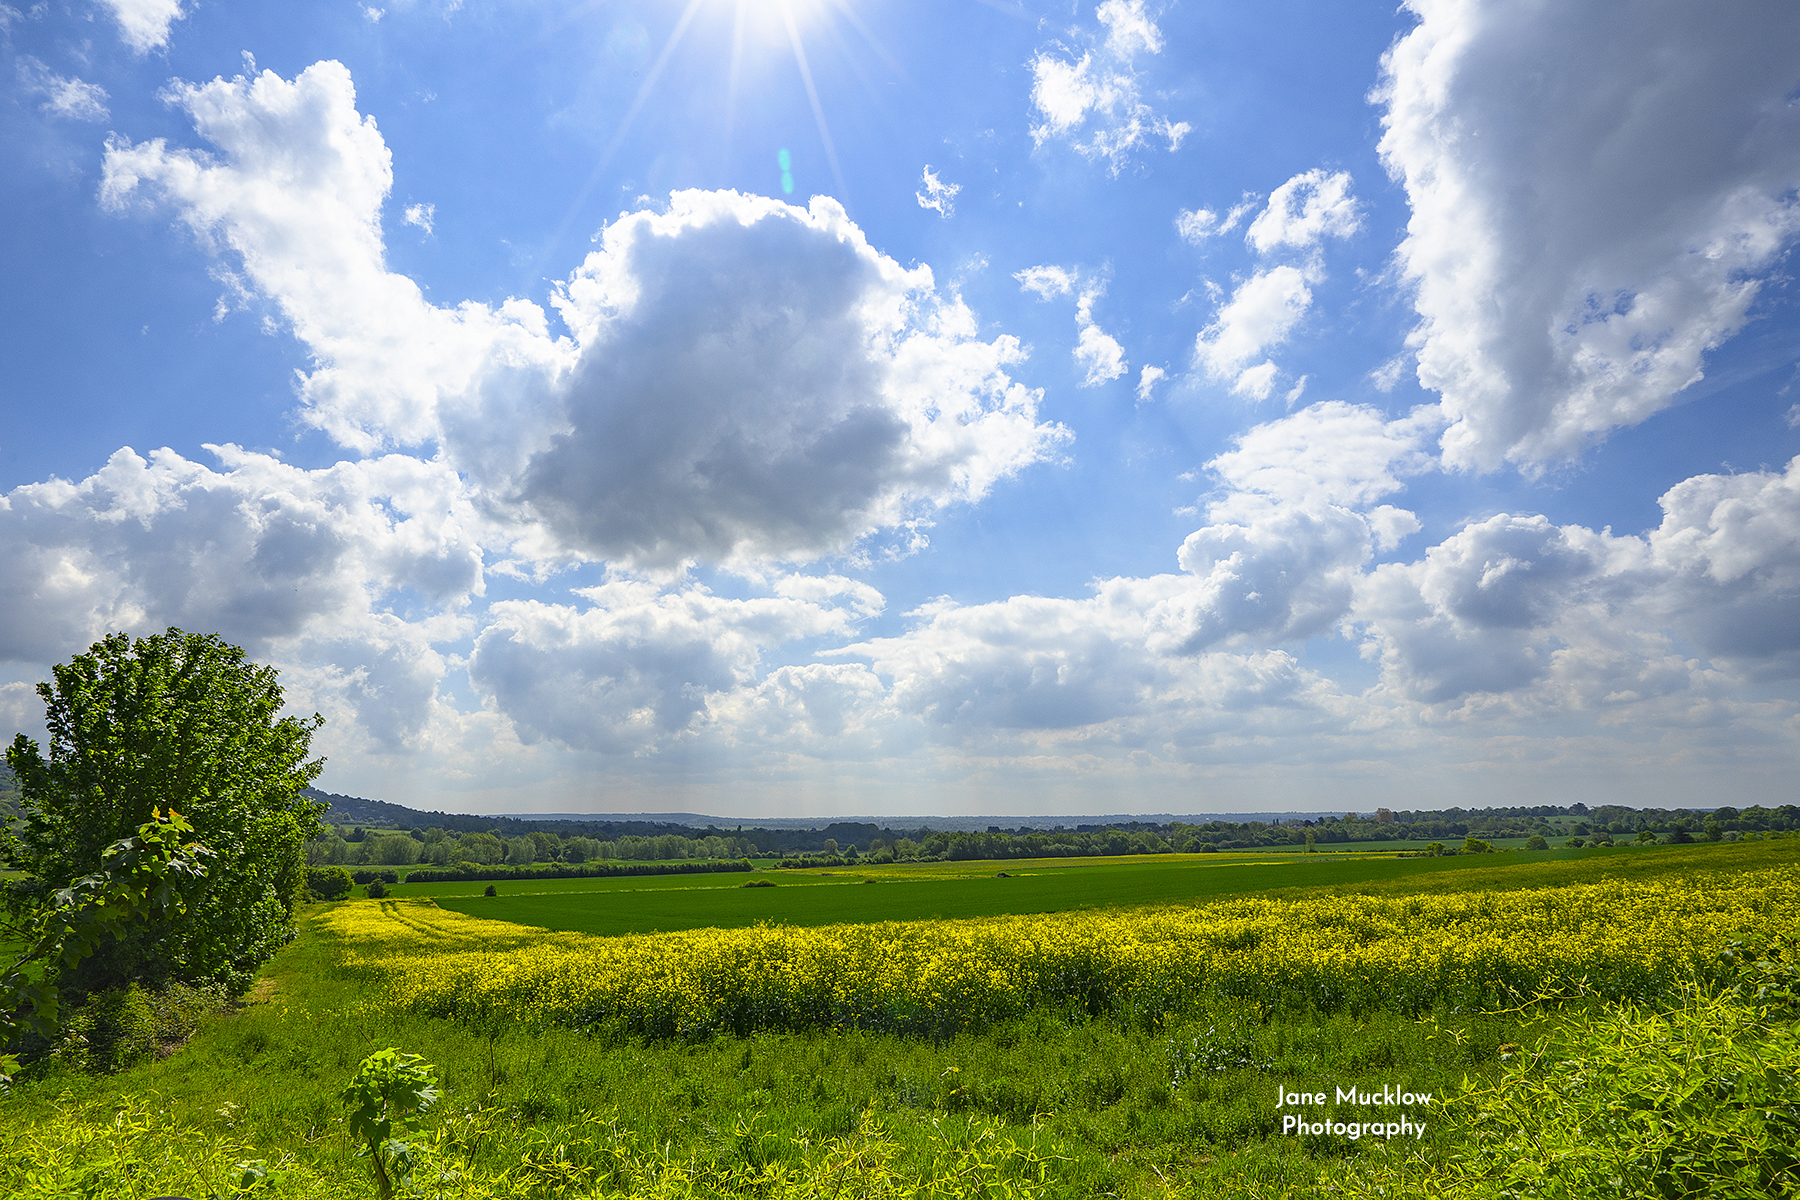 Photo of the view towards Otford, across the rapefields, by Jane Mucklow